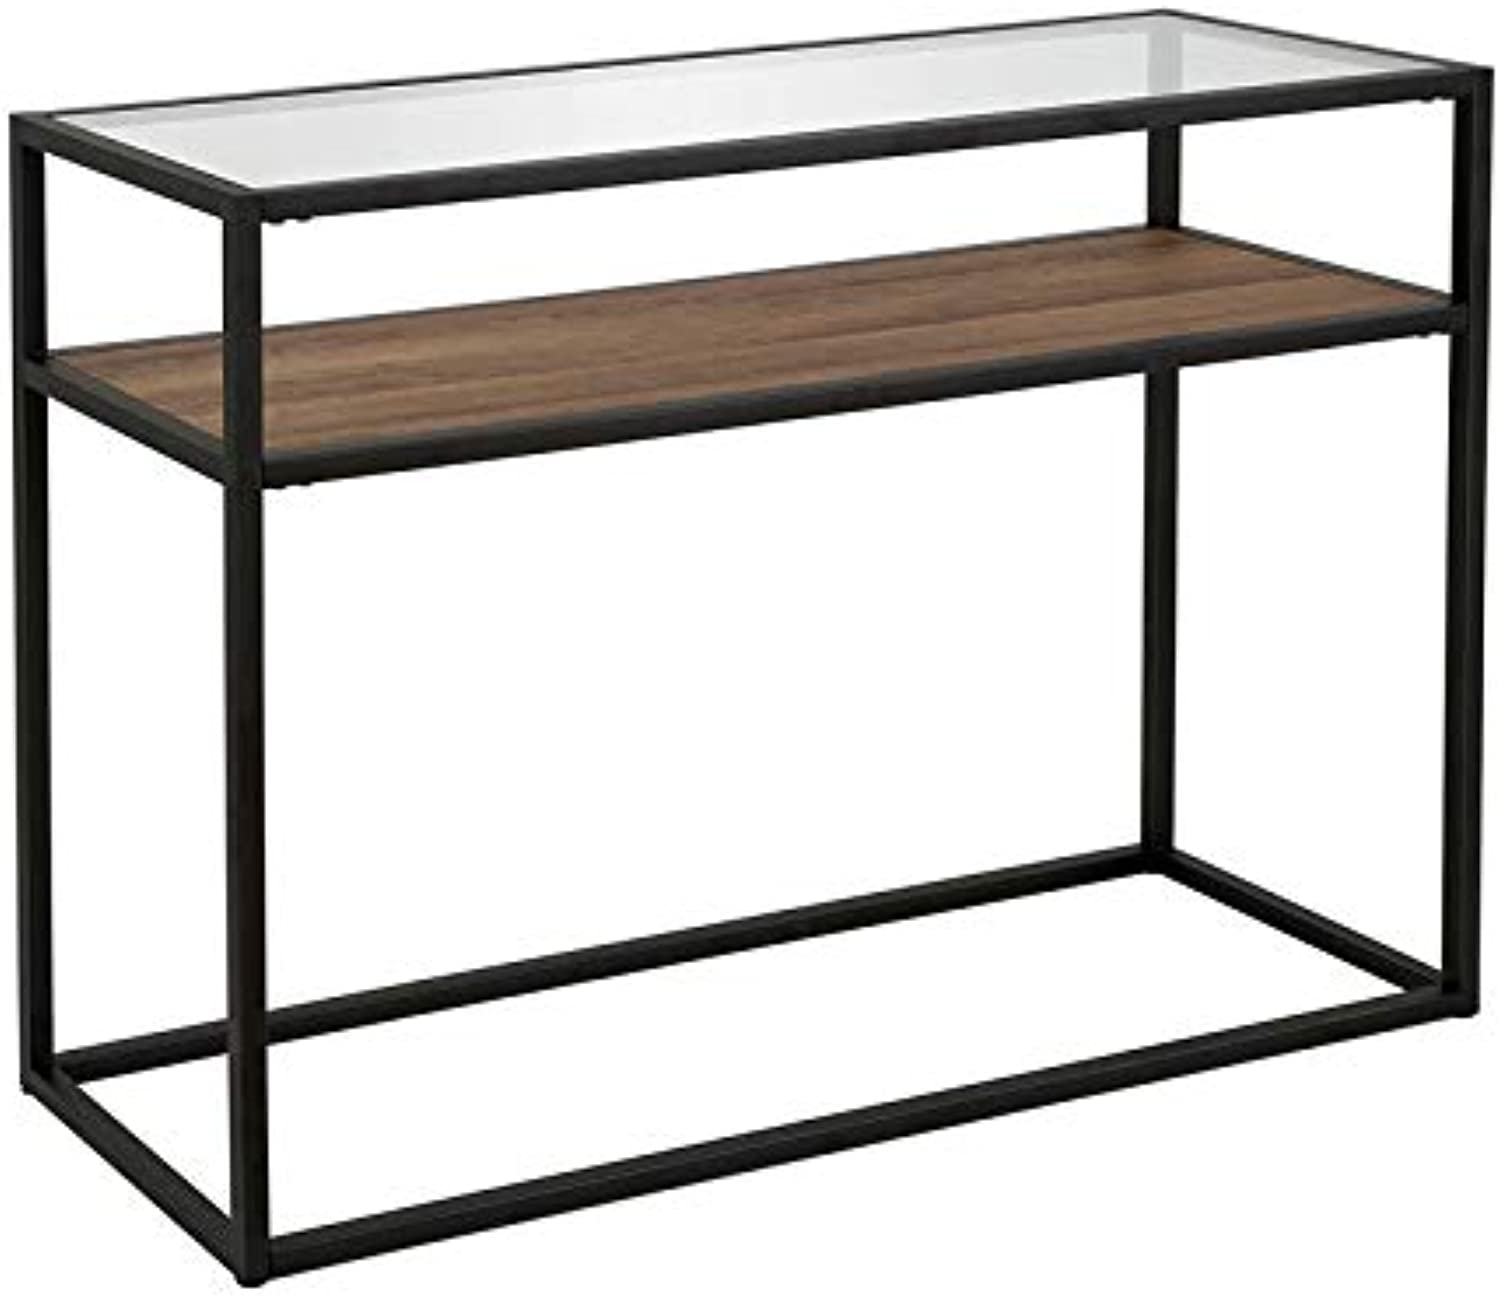 Classic Glass and Wooden Console Table